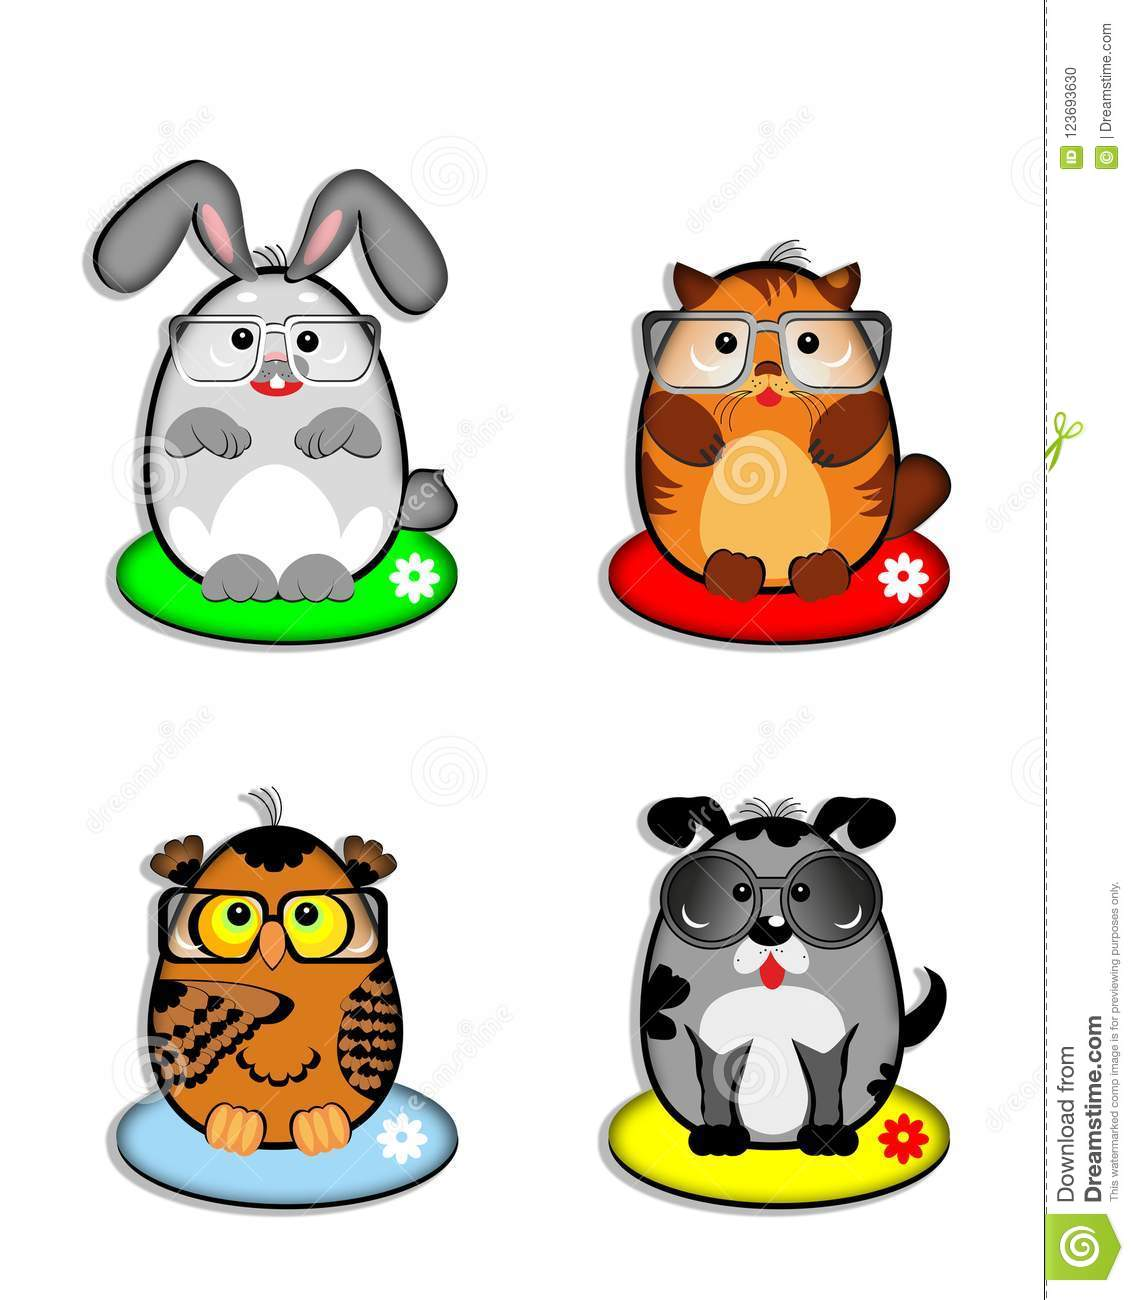 Funny pets, emotion, new, smiles, rabbit, cat, kitty, dog, puppy, owl, spectacle,vector, illustration